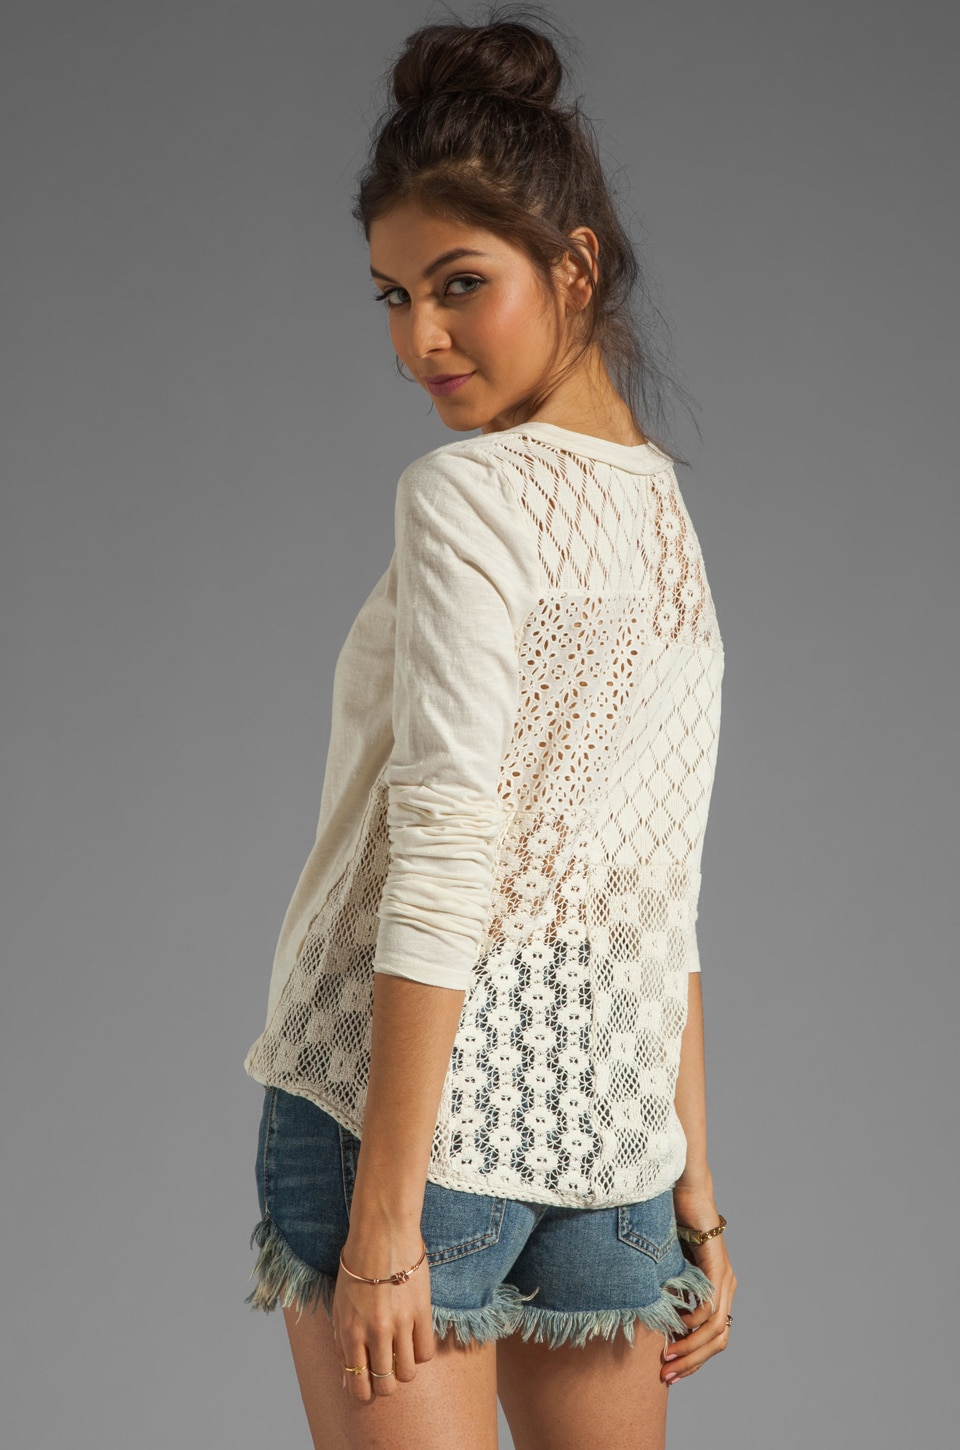 Free People Patches of Lace Henley in Creme